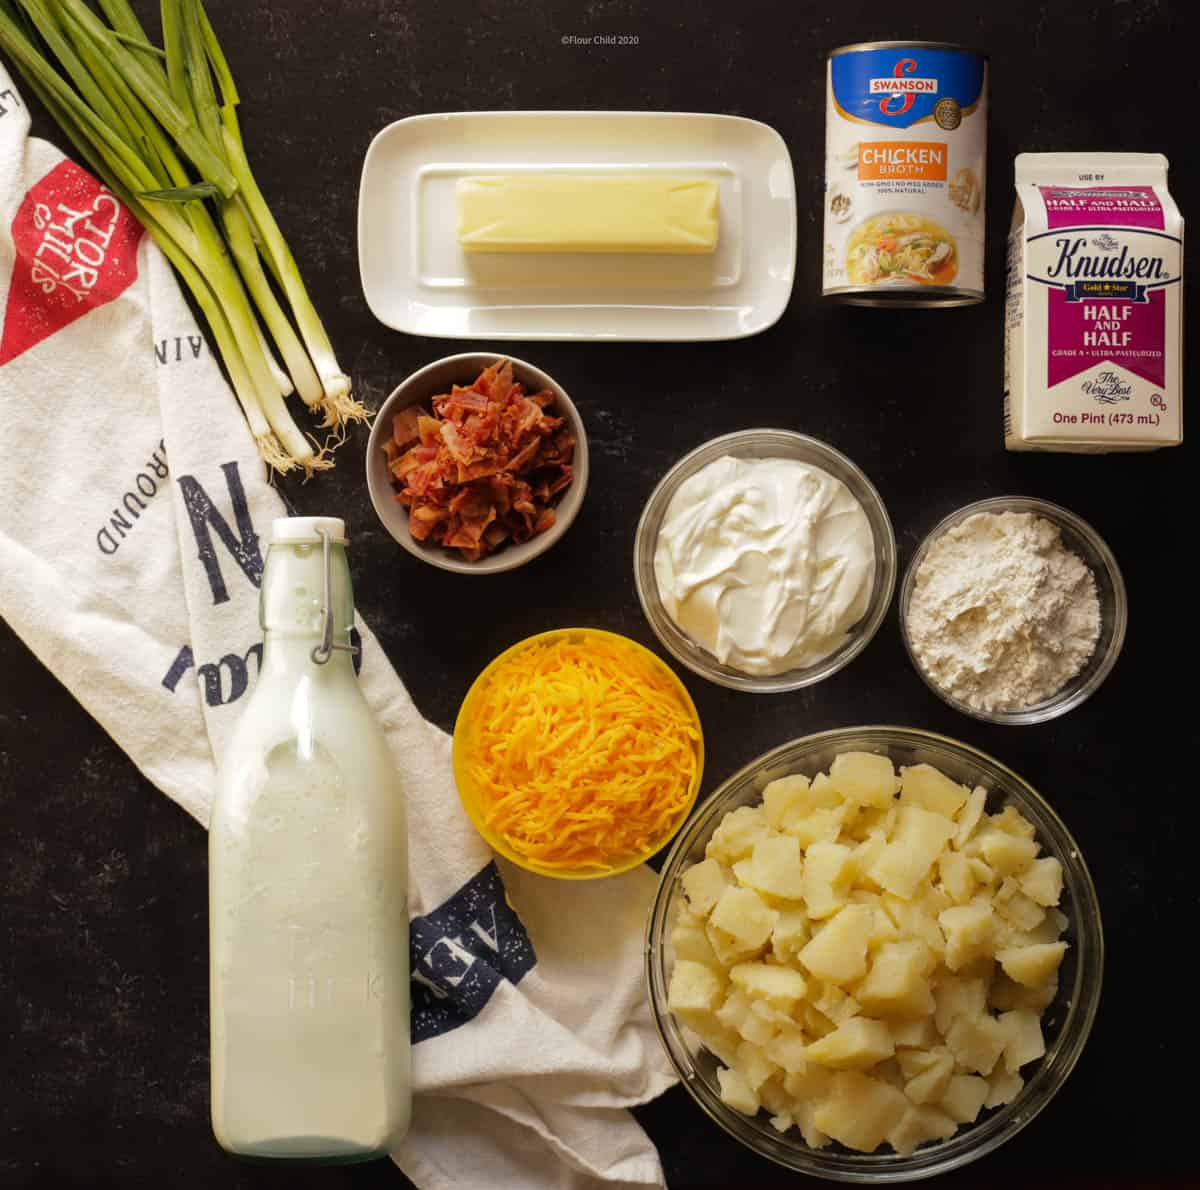 All of the ingredients needed to make baked potato soup are set out on a table